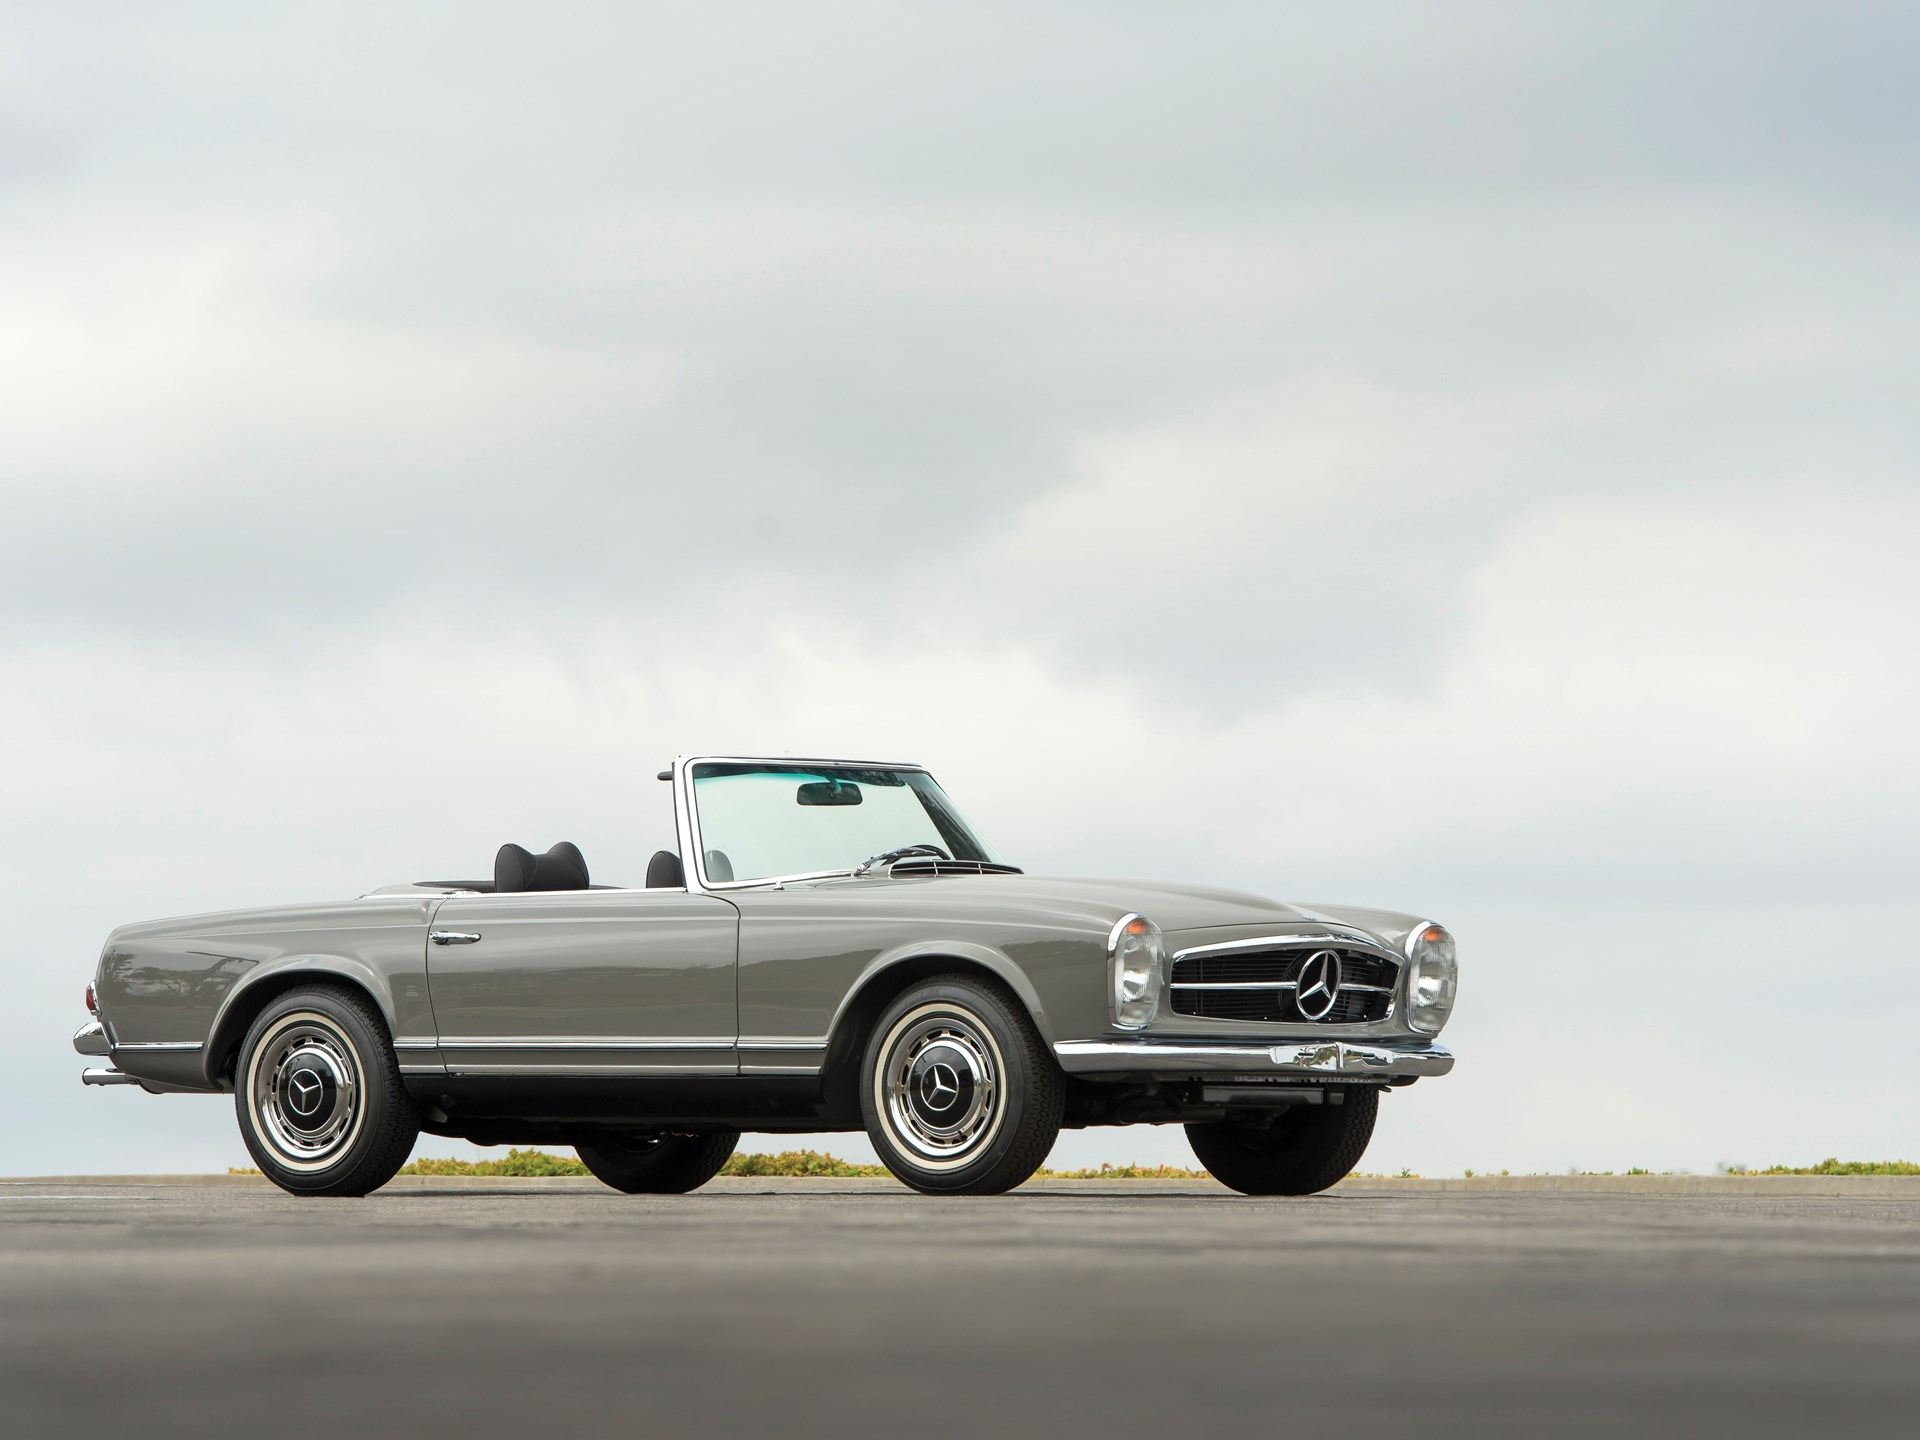 1970 Mercedes-Benz 280SL gray 3/4 low